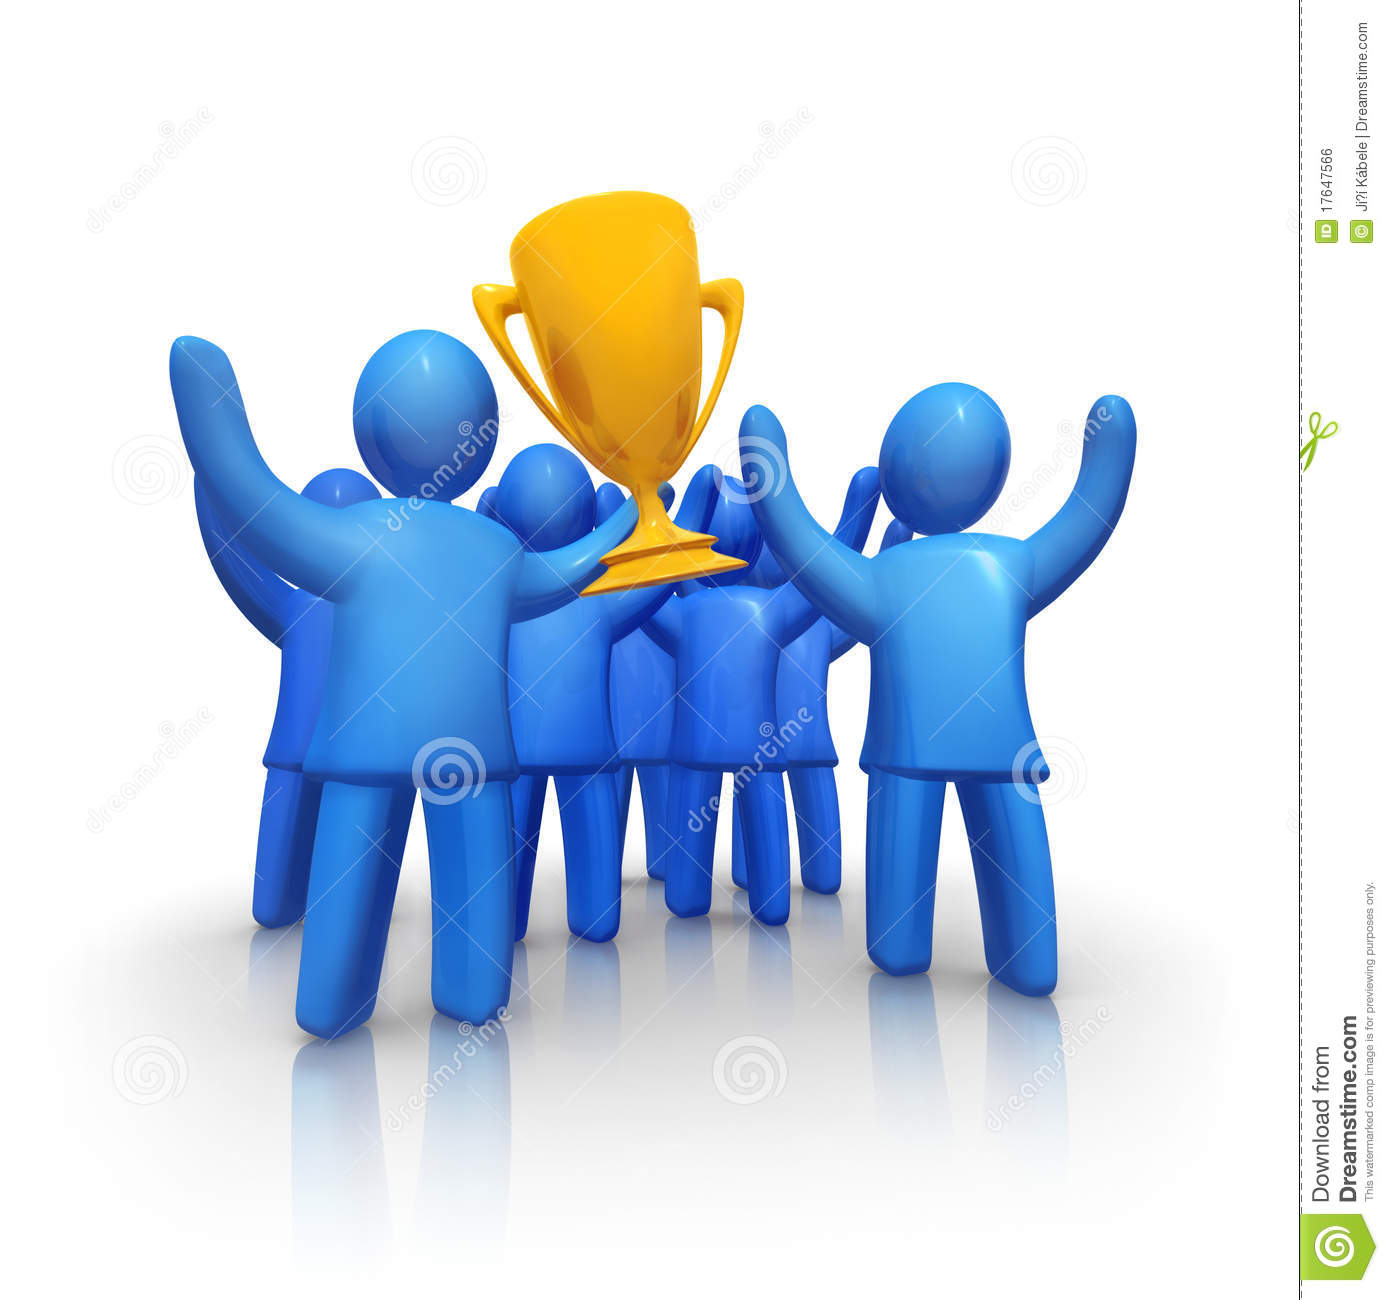 Winning Team Royalty Free Stock Image   Image  17647566